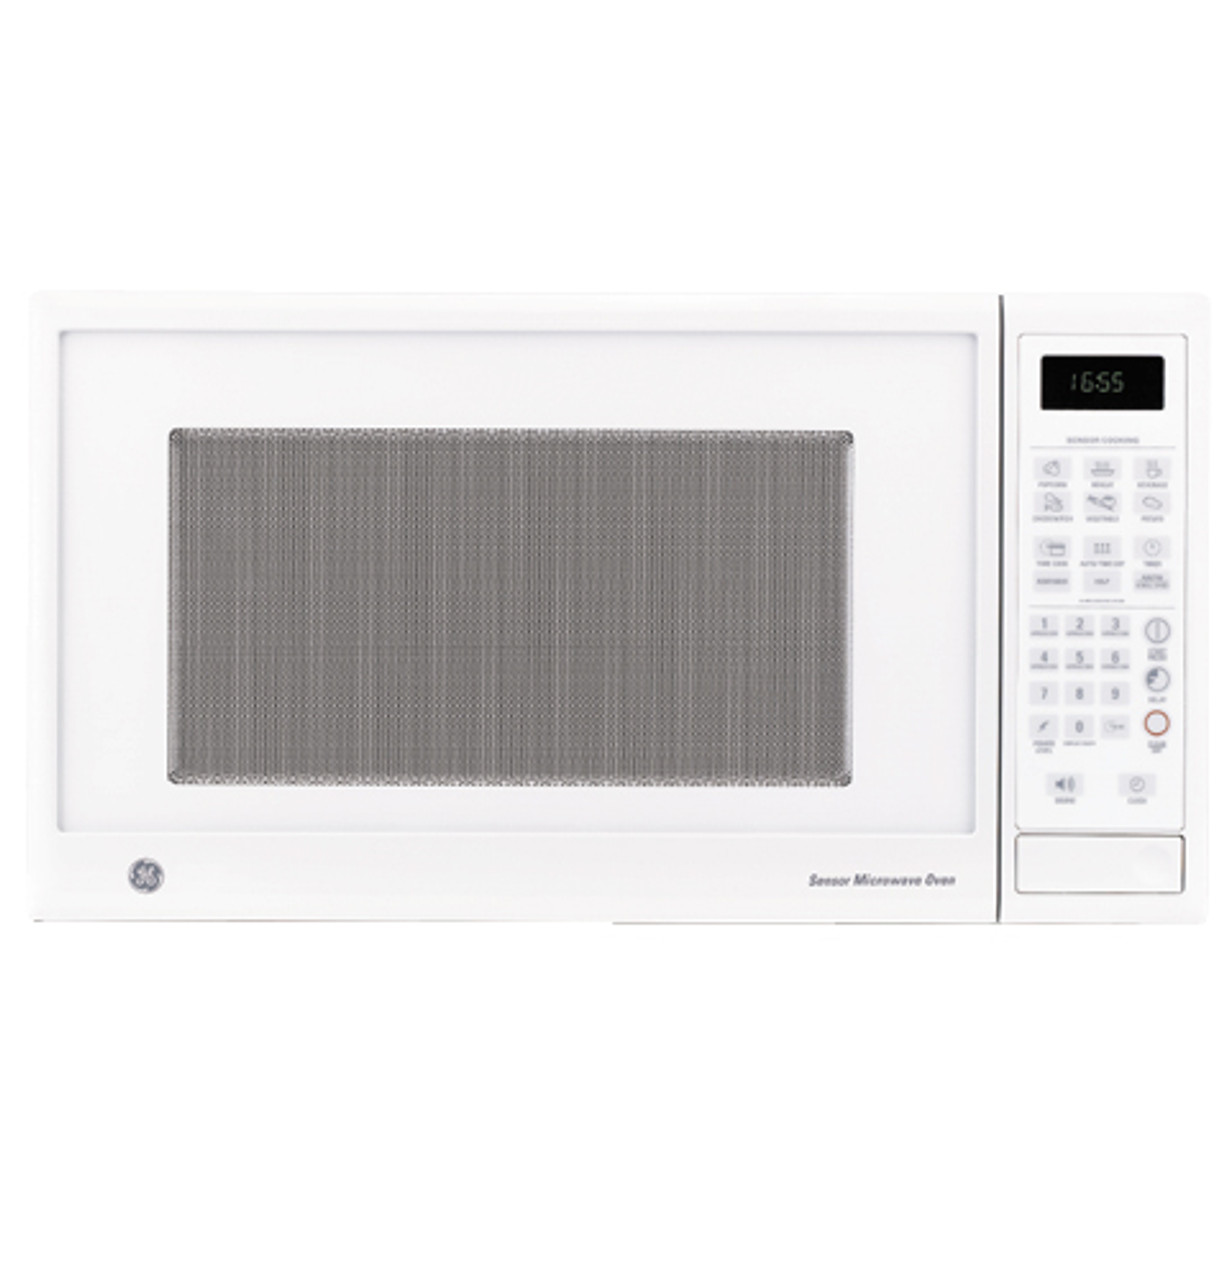 1 6 cu ft full size microwave oven